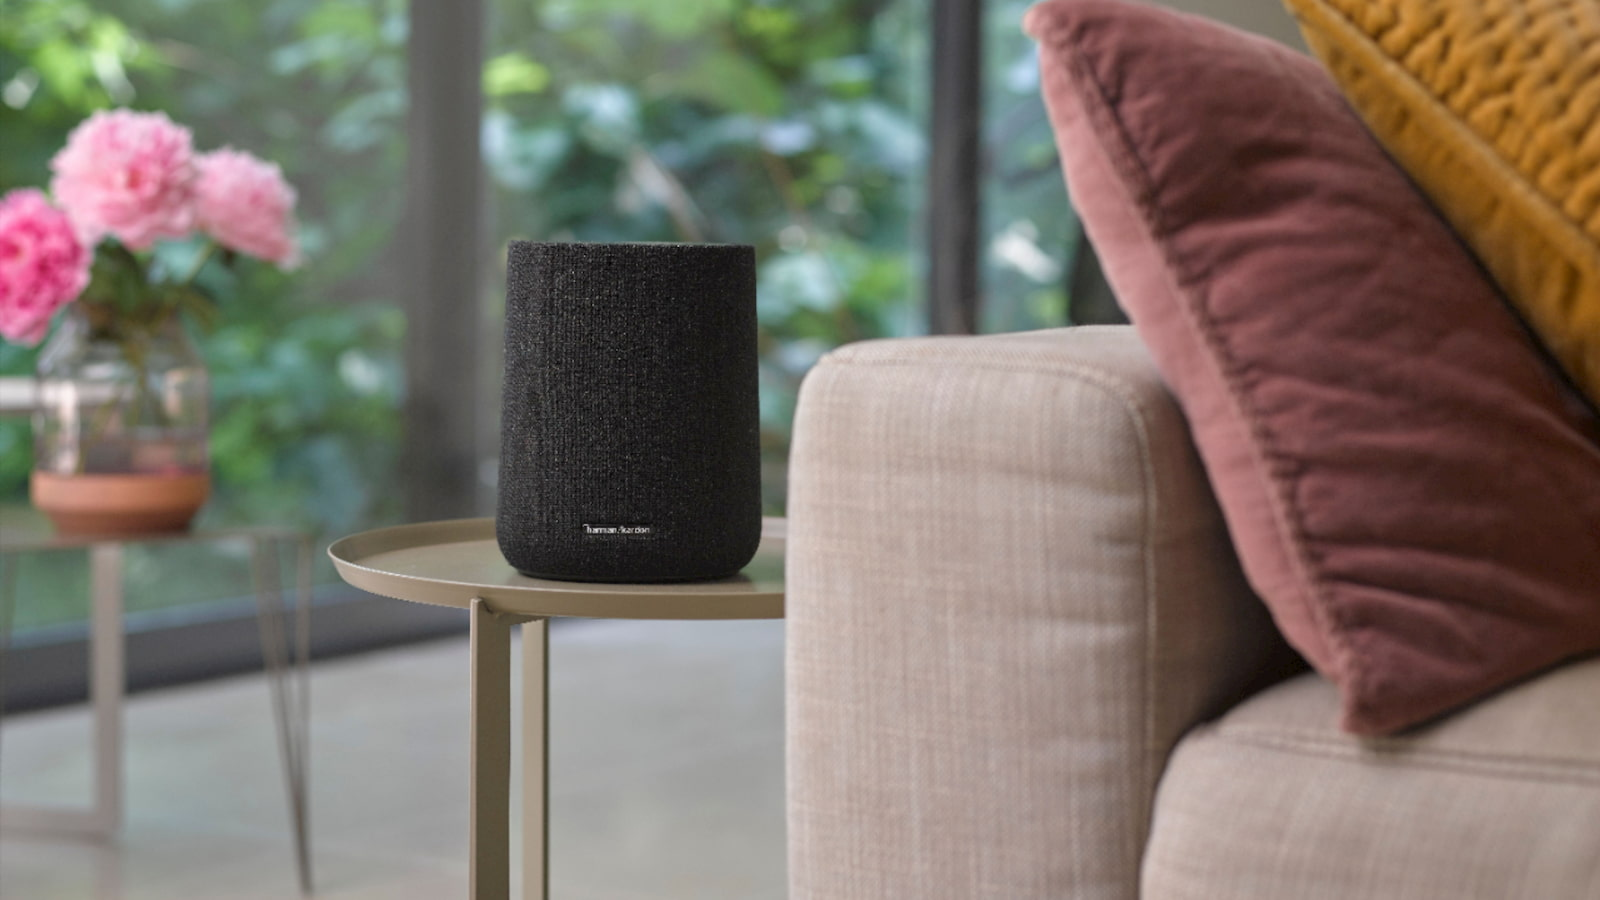 Deal Alert: Get this $230 Harmon Kardon speaker w/Google Assistant for $90